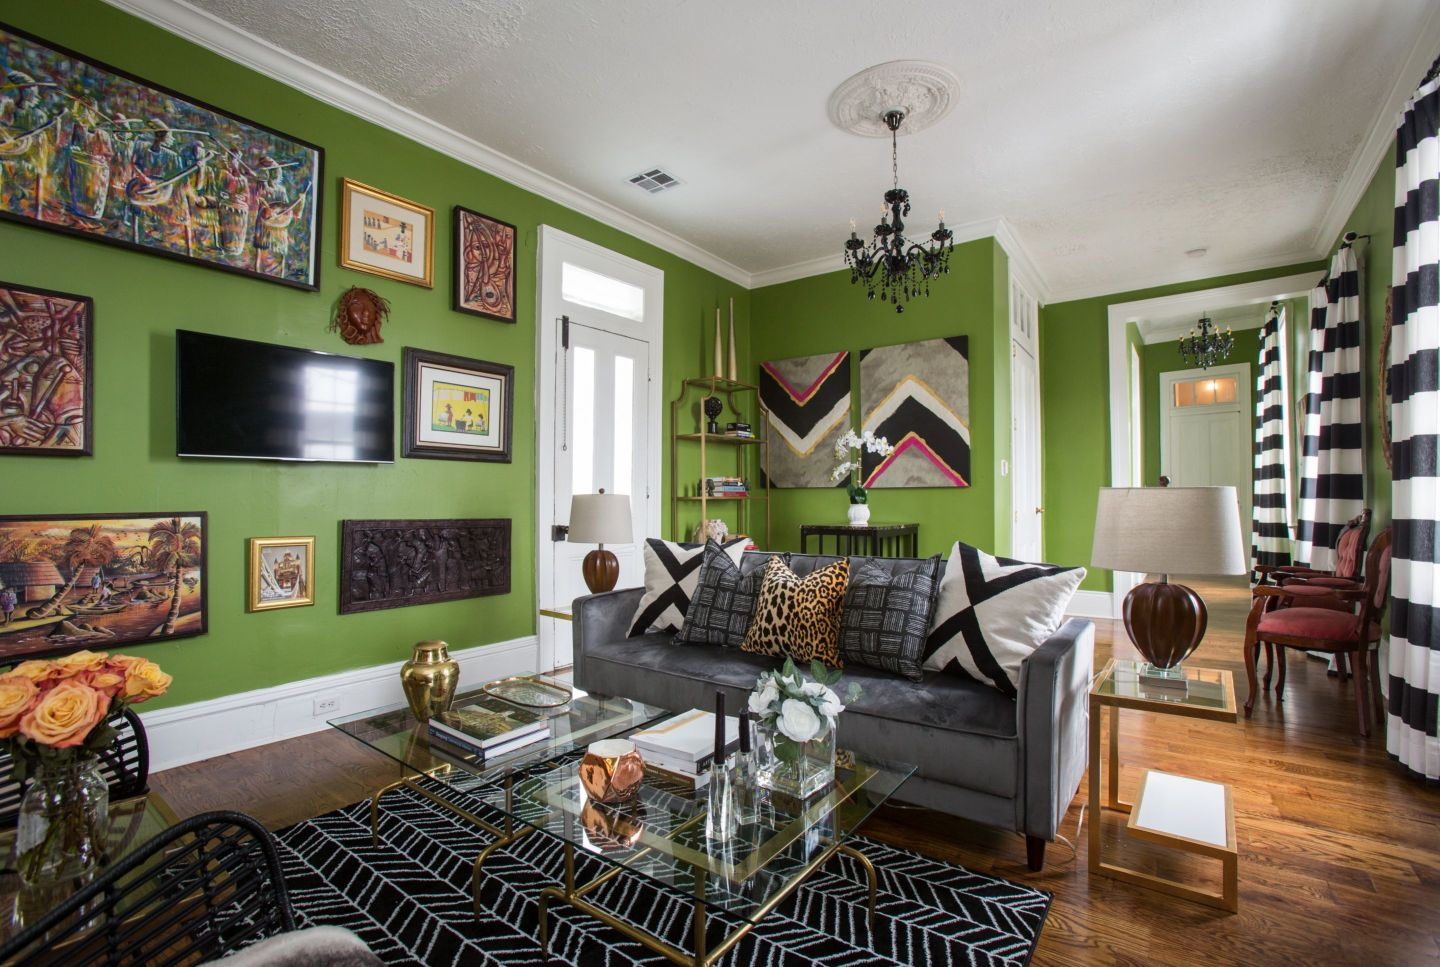 airbnb-7-1440x967 From Rocket Science to Interior Design: Baton Rouge Roots and Bold Design from April Vogt